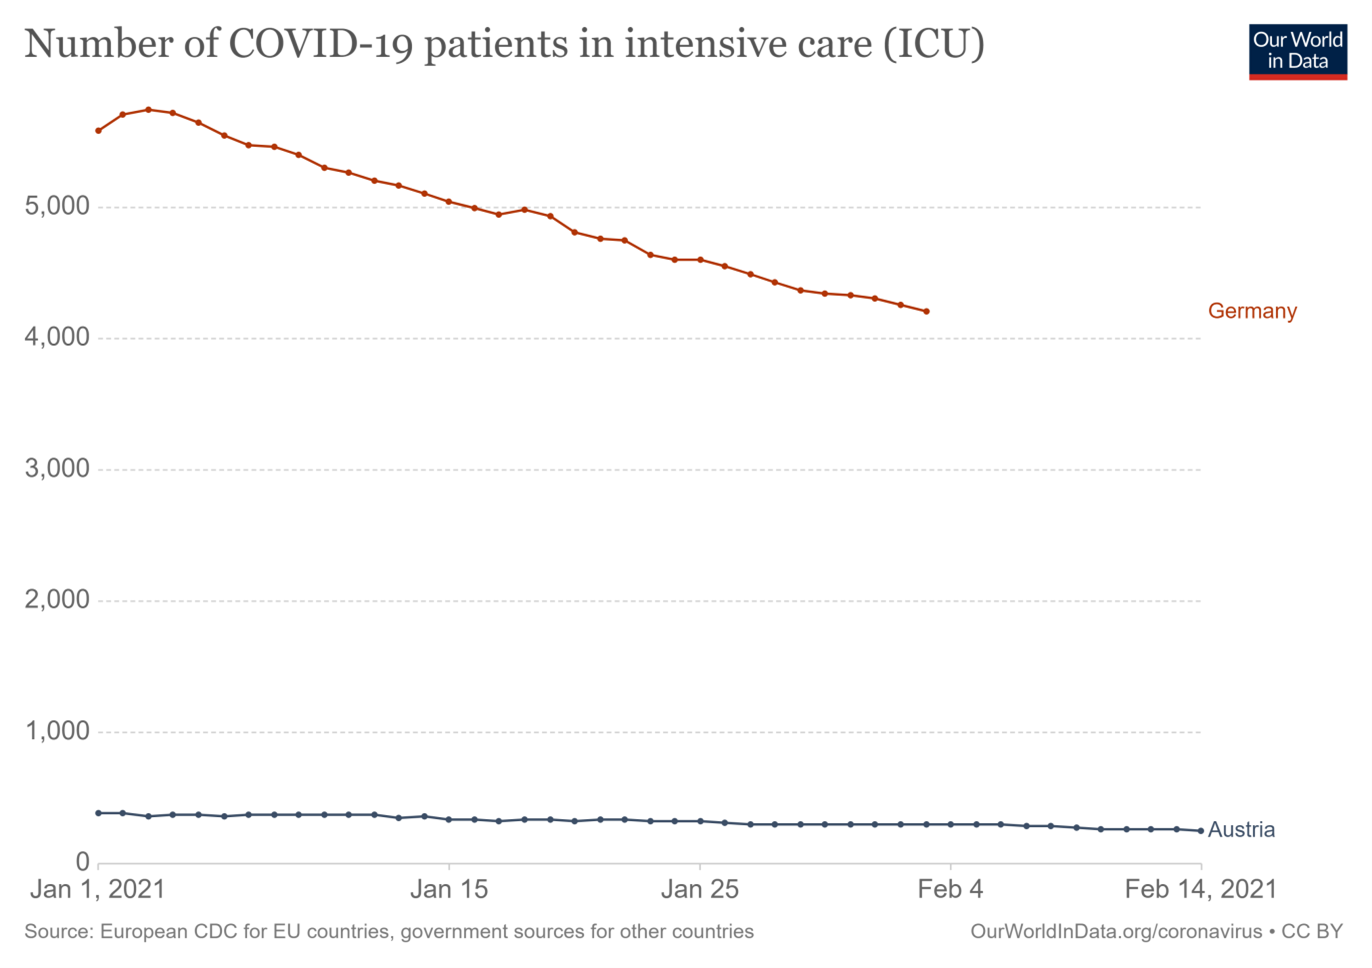 Quelle: John Hopkins University CSSE COVID-19 Data/14 February, Coronavirus Pandemic Data Explorer – Our World in Data/Number of COVID-19 patients in intensive care (ICU)